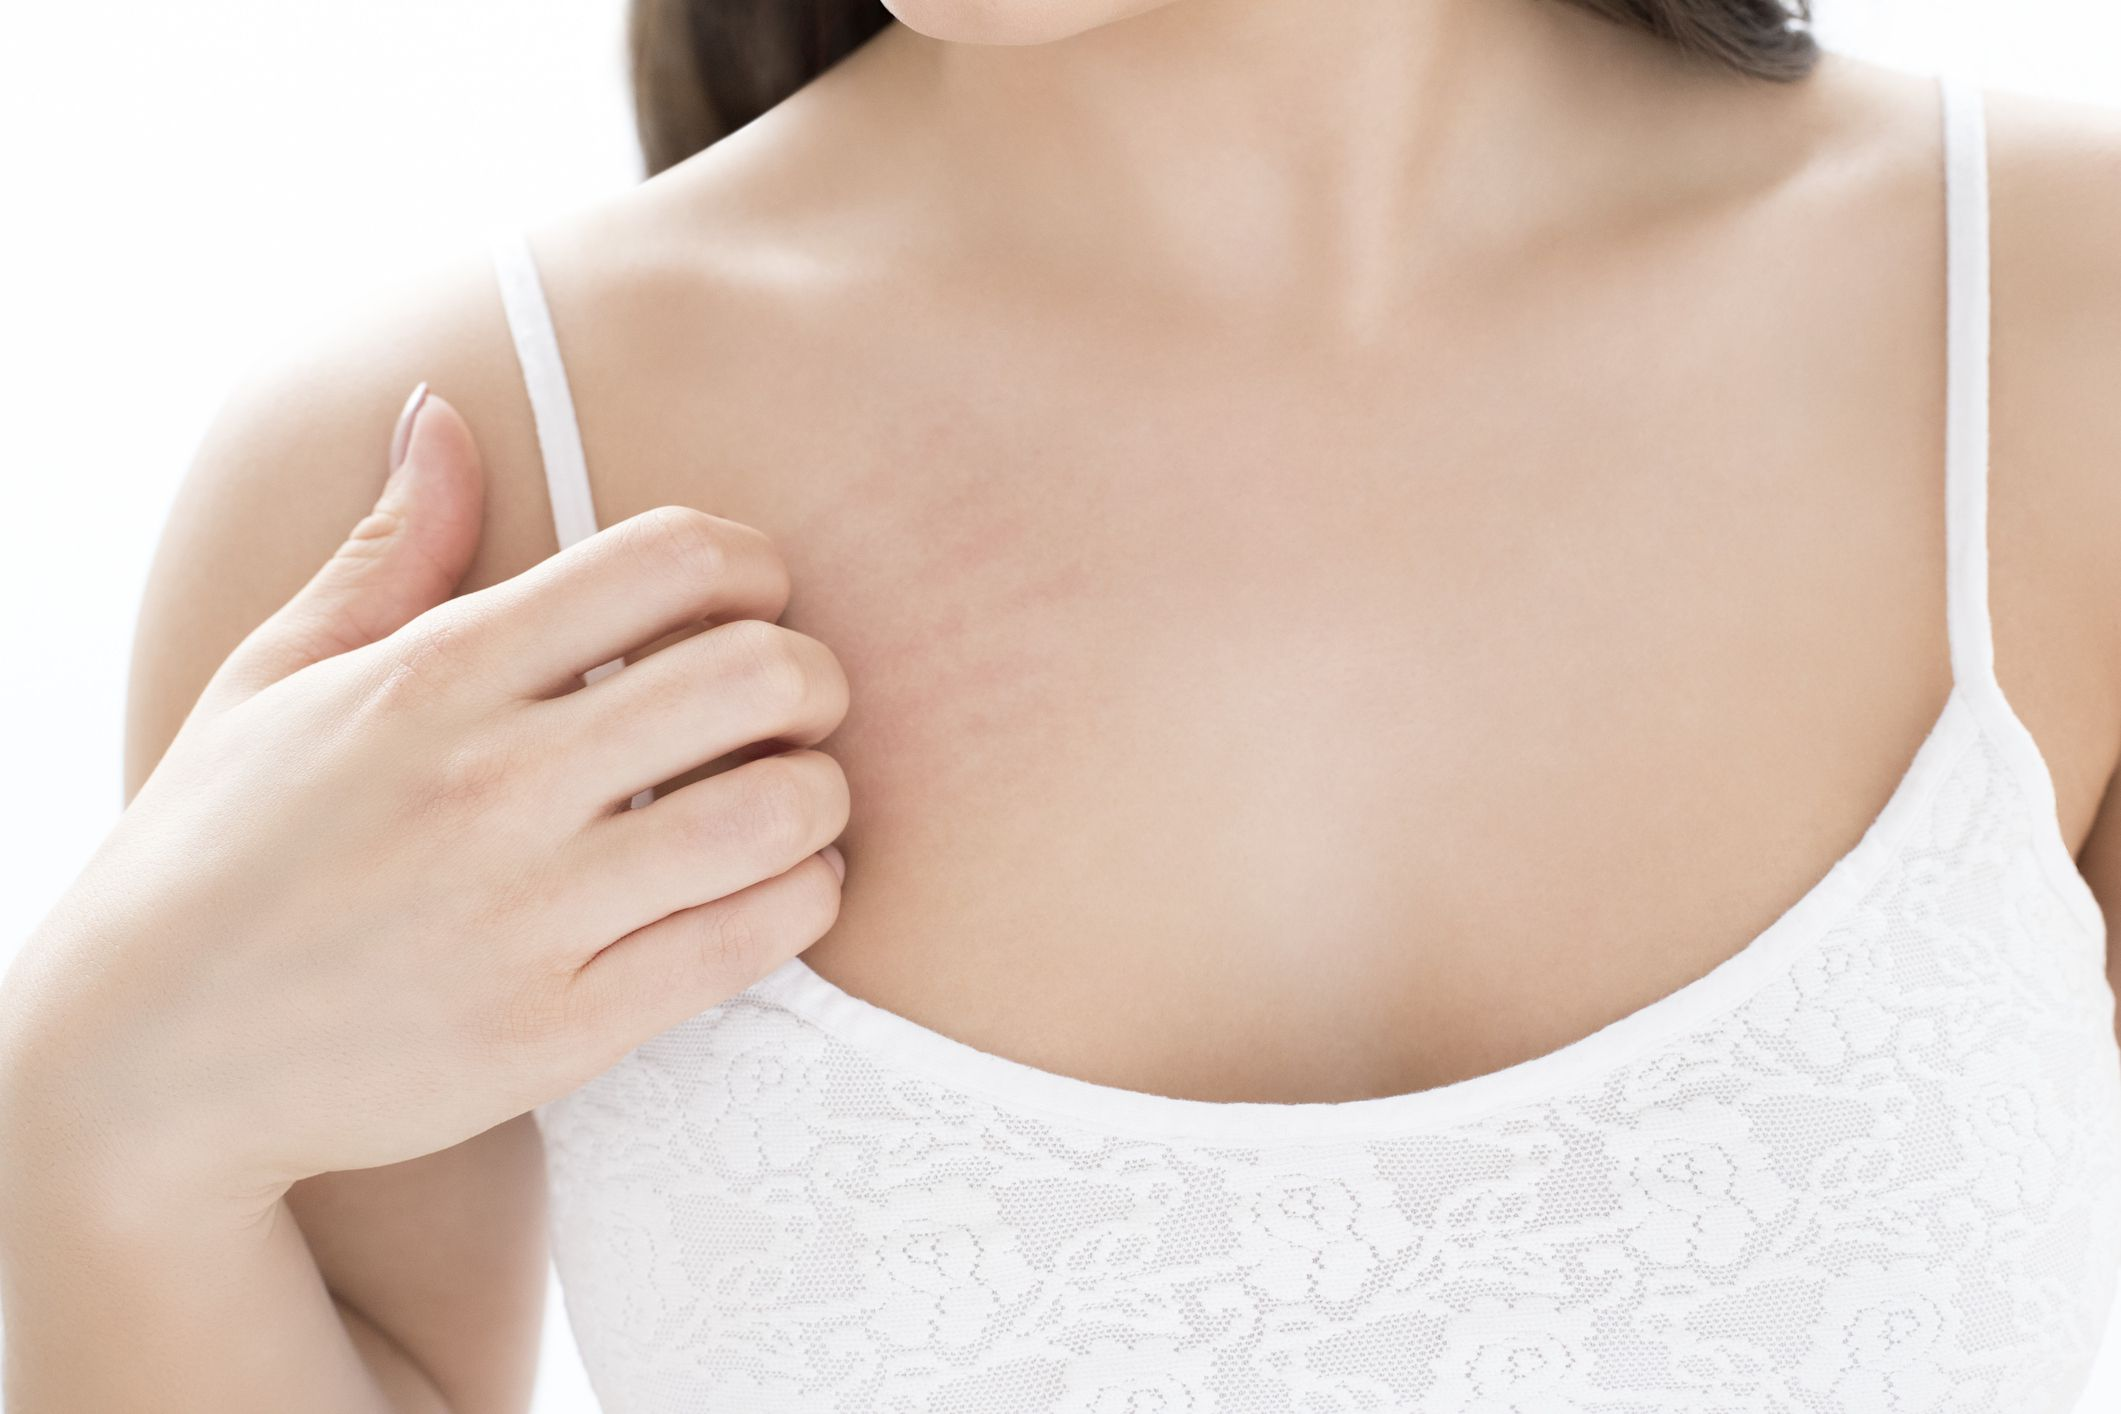 Chronic shoulder pain after breast augmentation